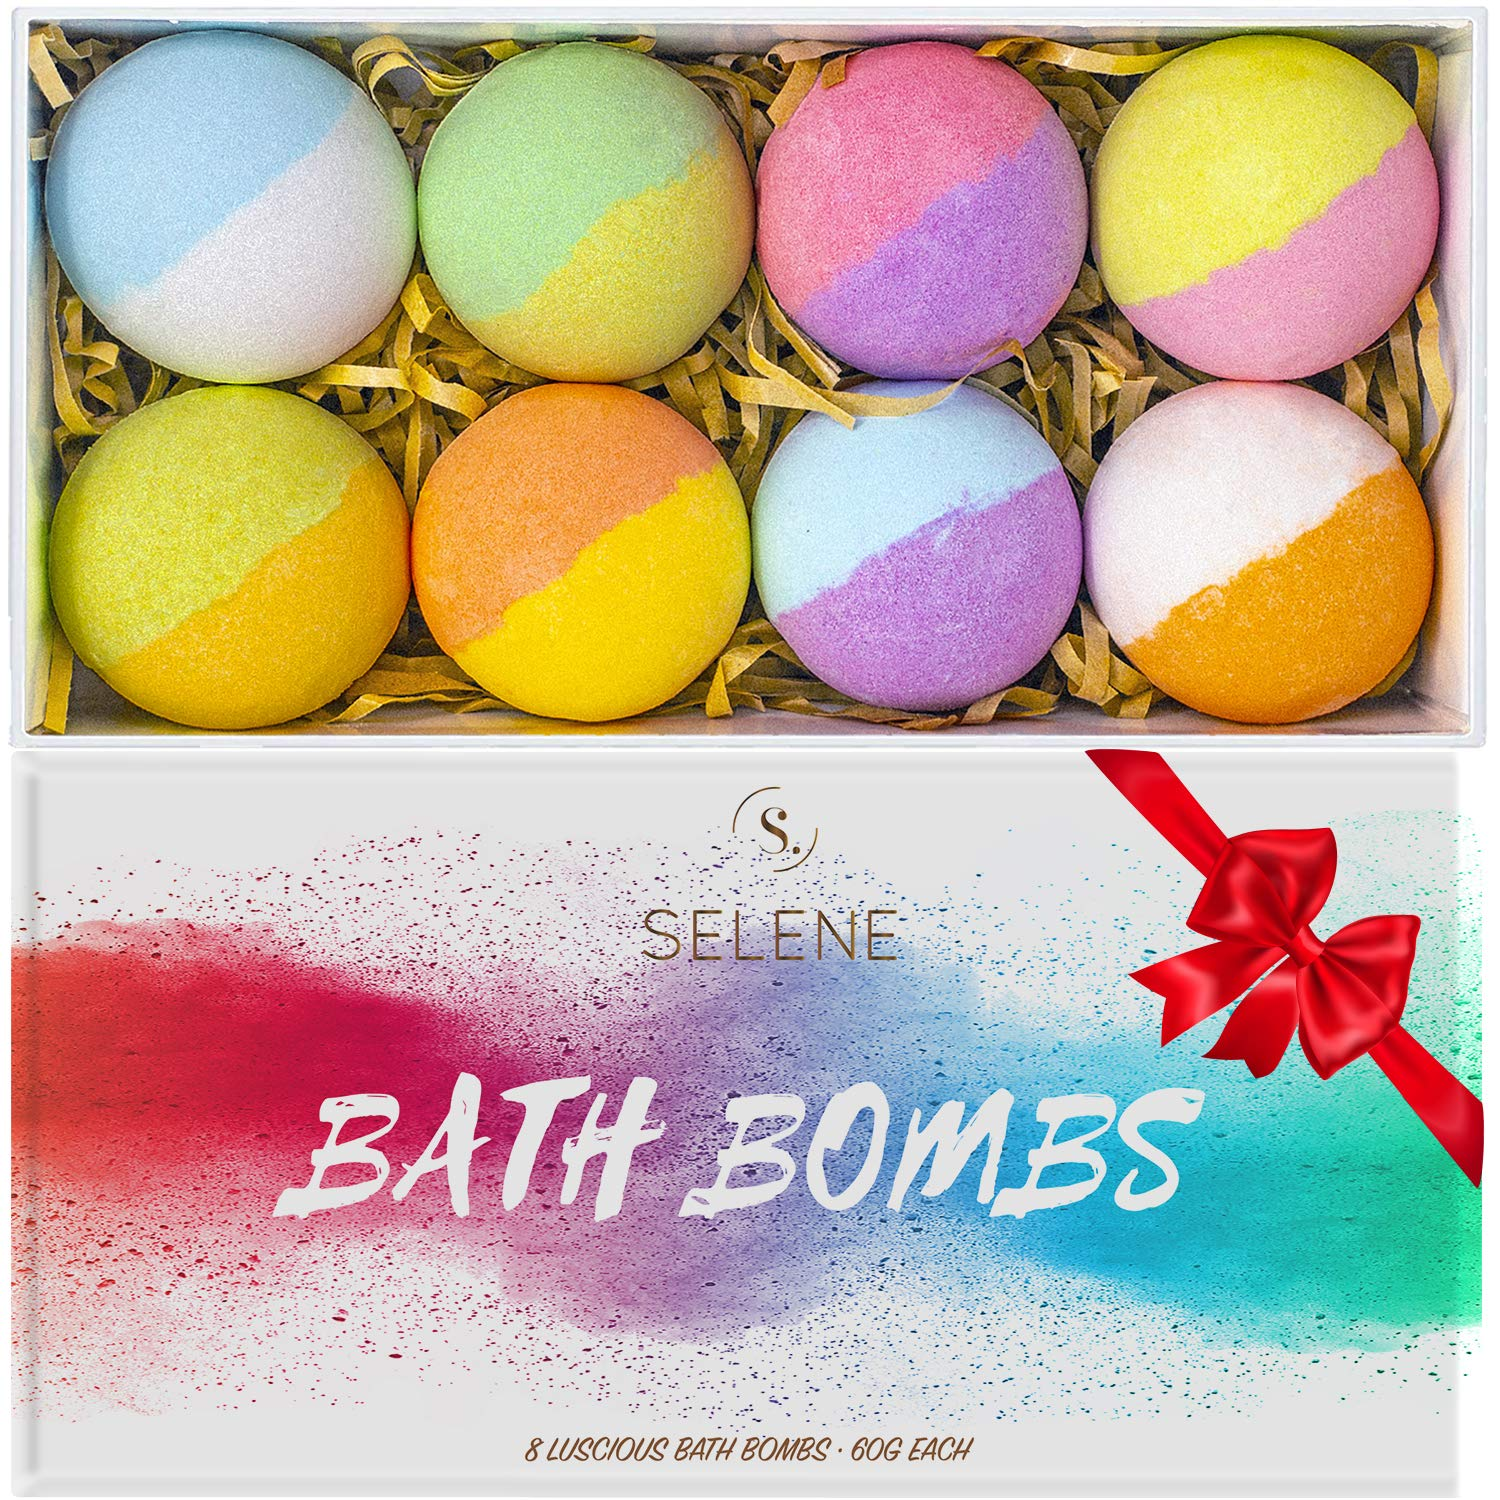 Selene Colorful Bath Bombs Gift Set (Holiday 8 Pack) - Spa Fizzies For Kids, Women - Lush Present Idea for Her, Mom, Girlfriend, Birthday - Handmade, Vegan, and Non Staining